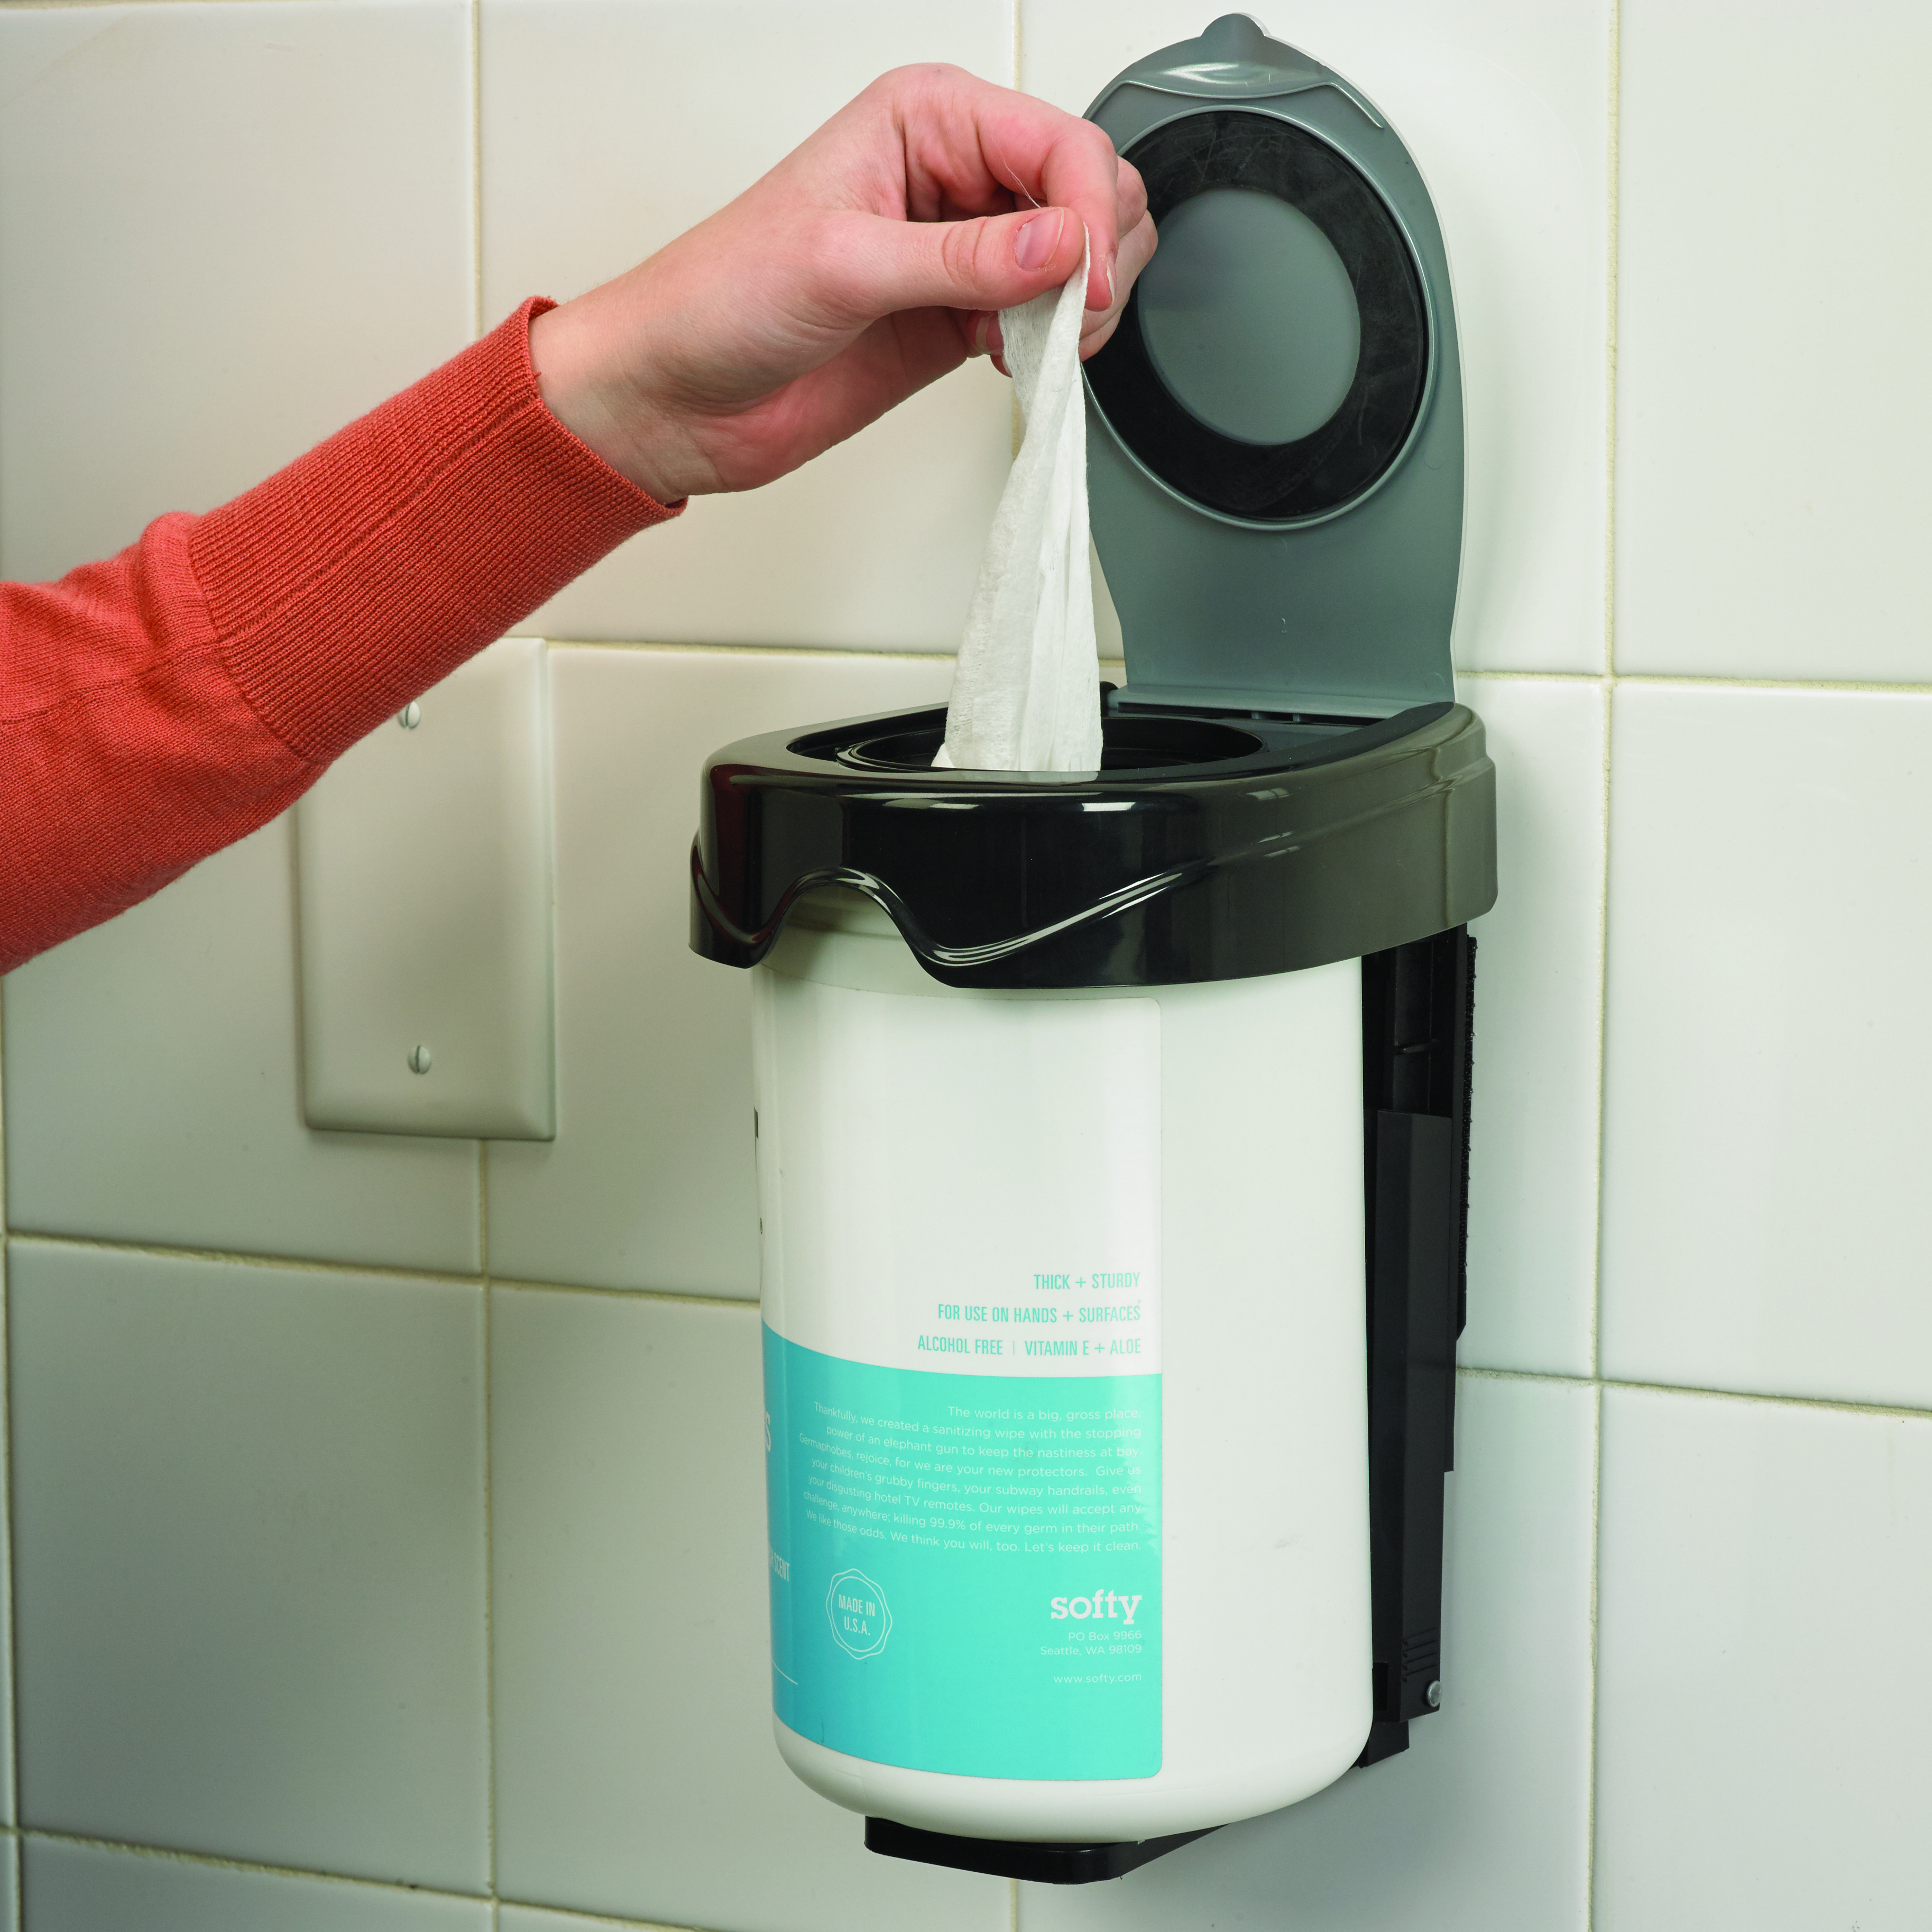 San Jamar WD1010BKSS cleaning cloth / wipes dispenser